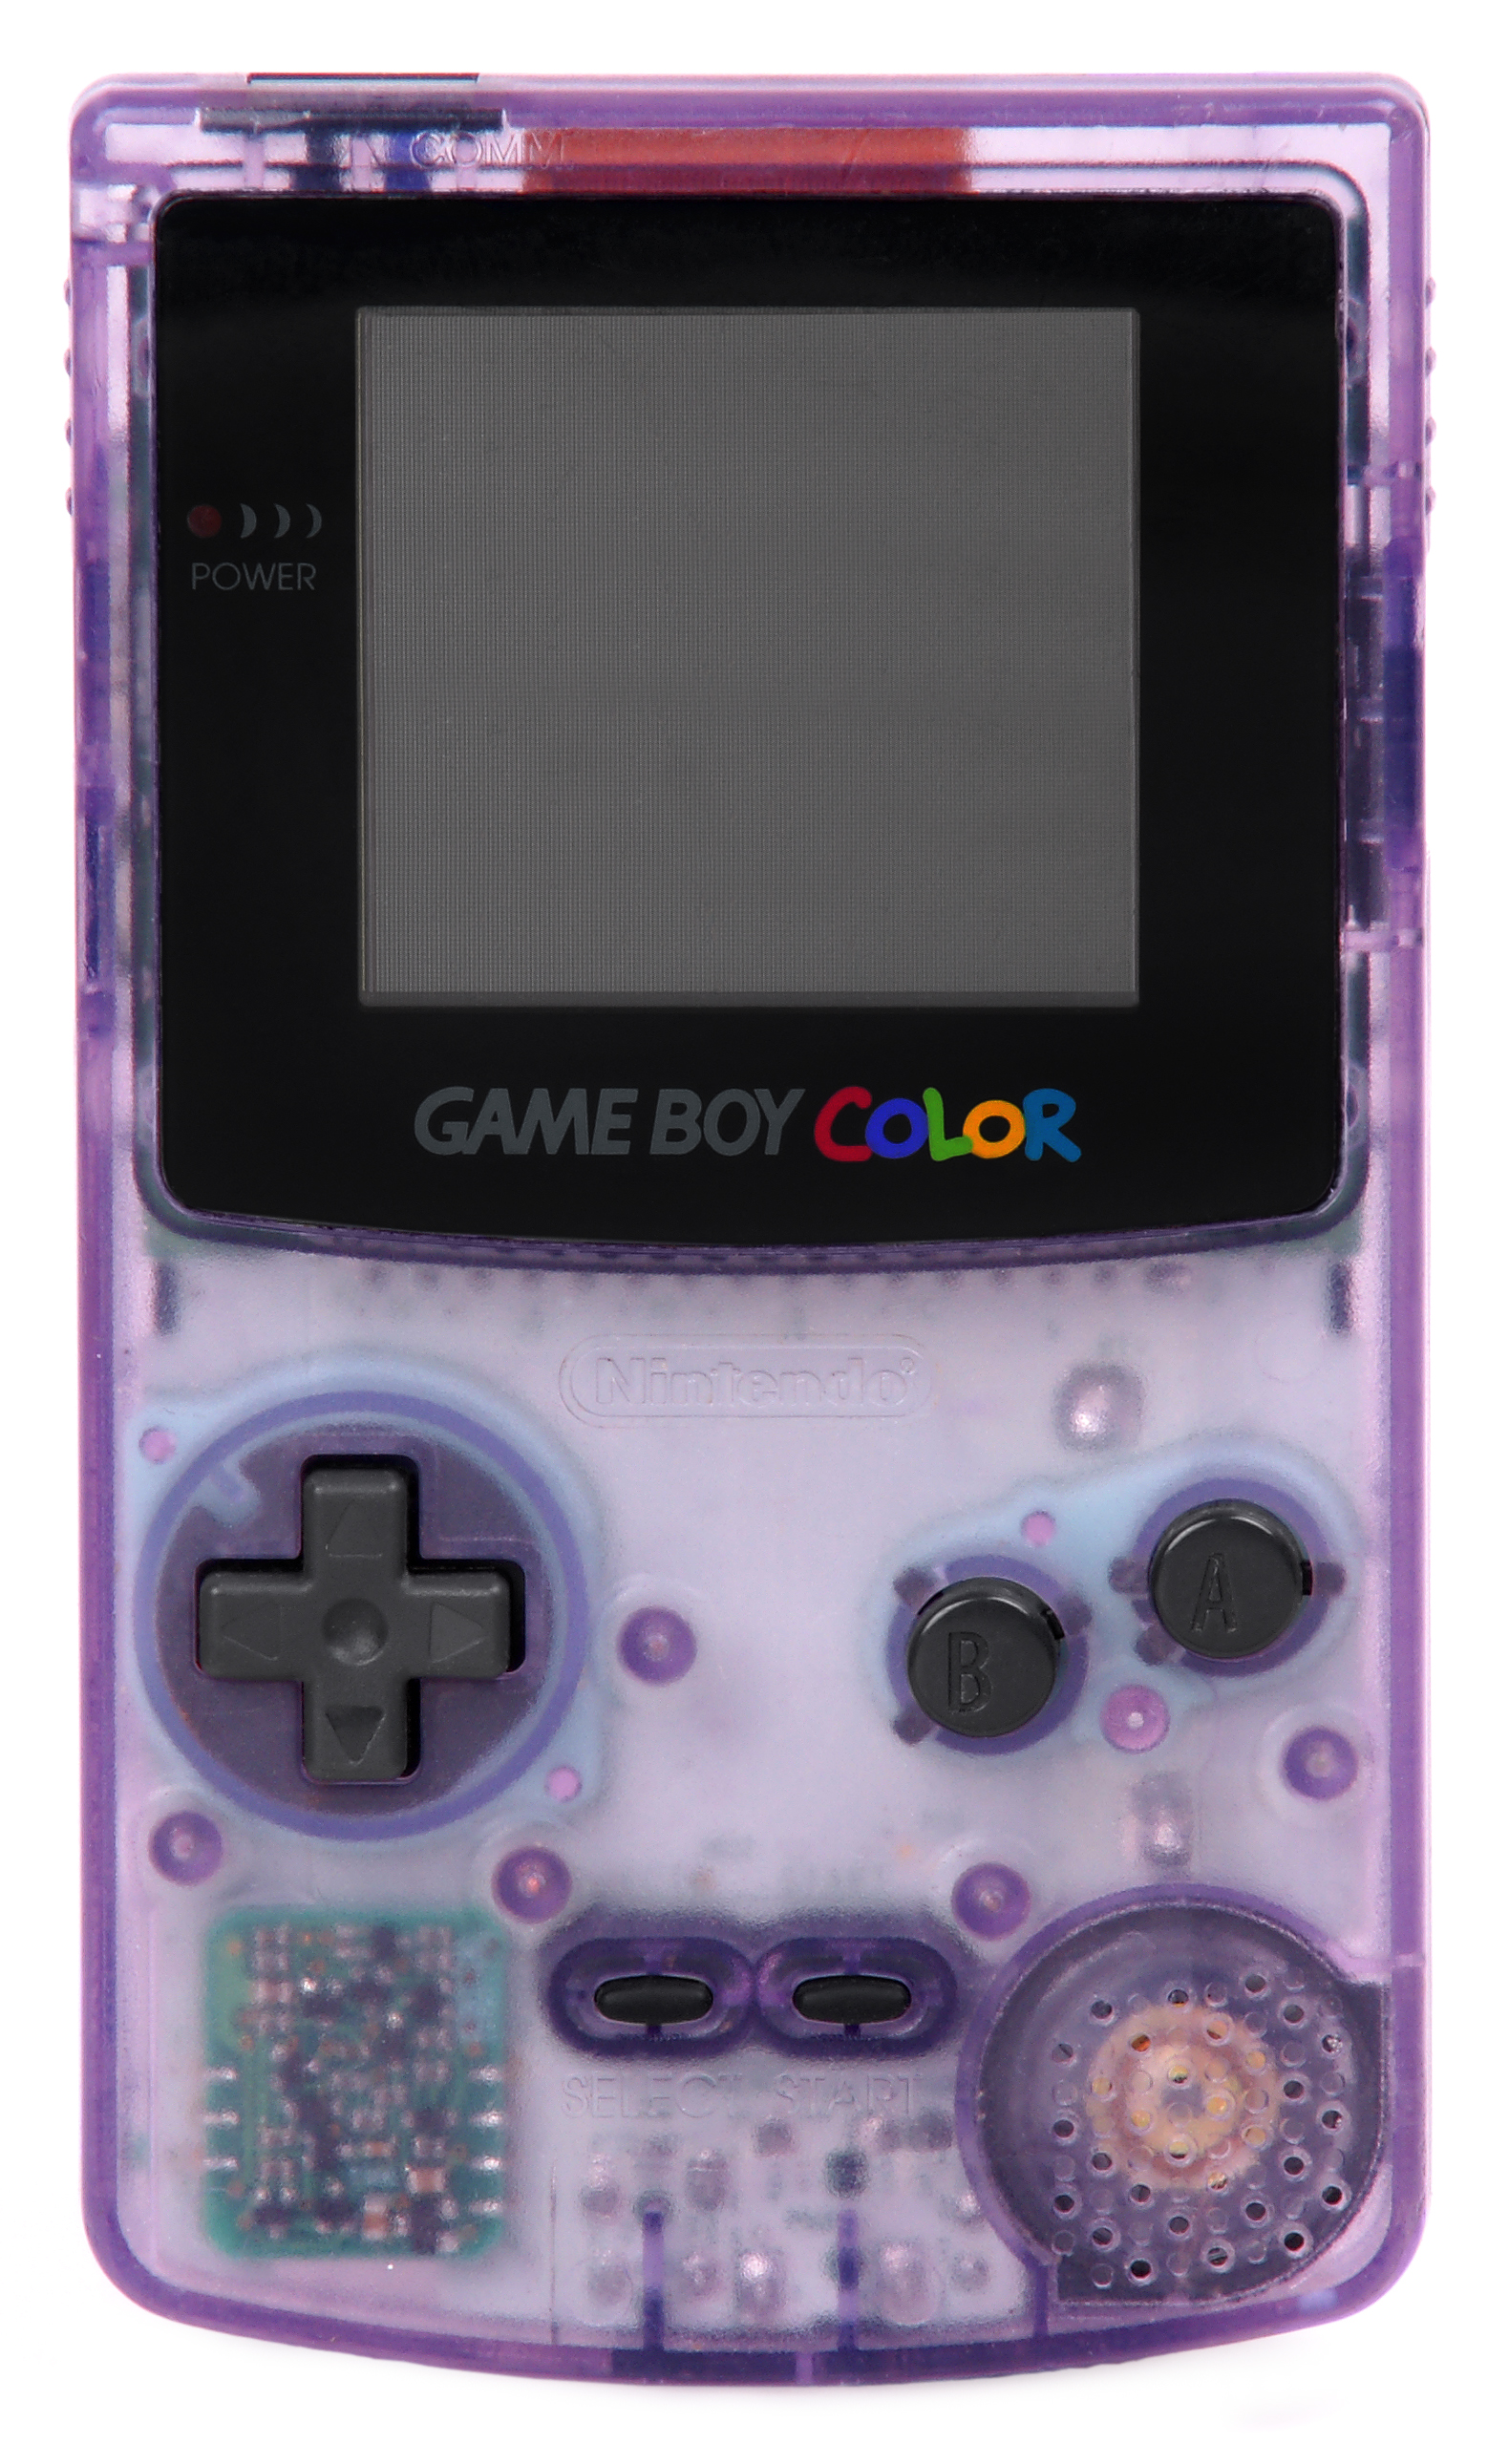 game boy color - Picture Of A Boy To Color